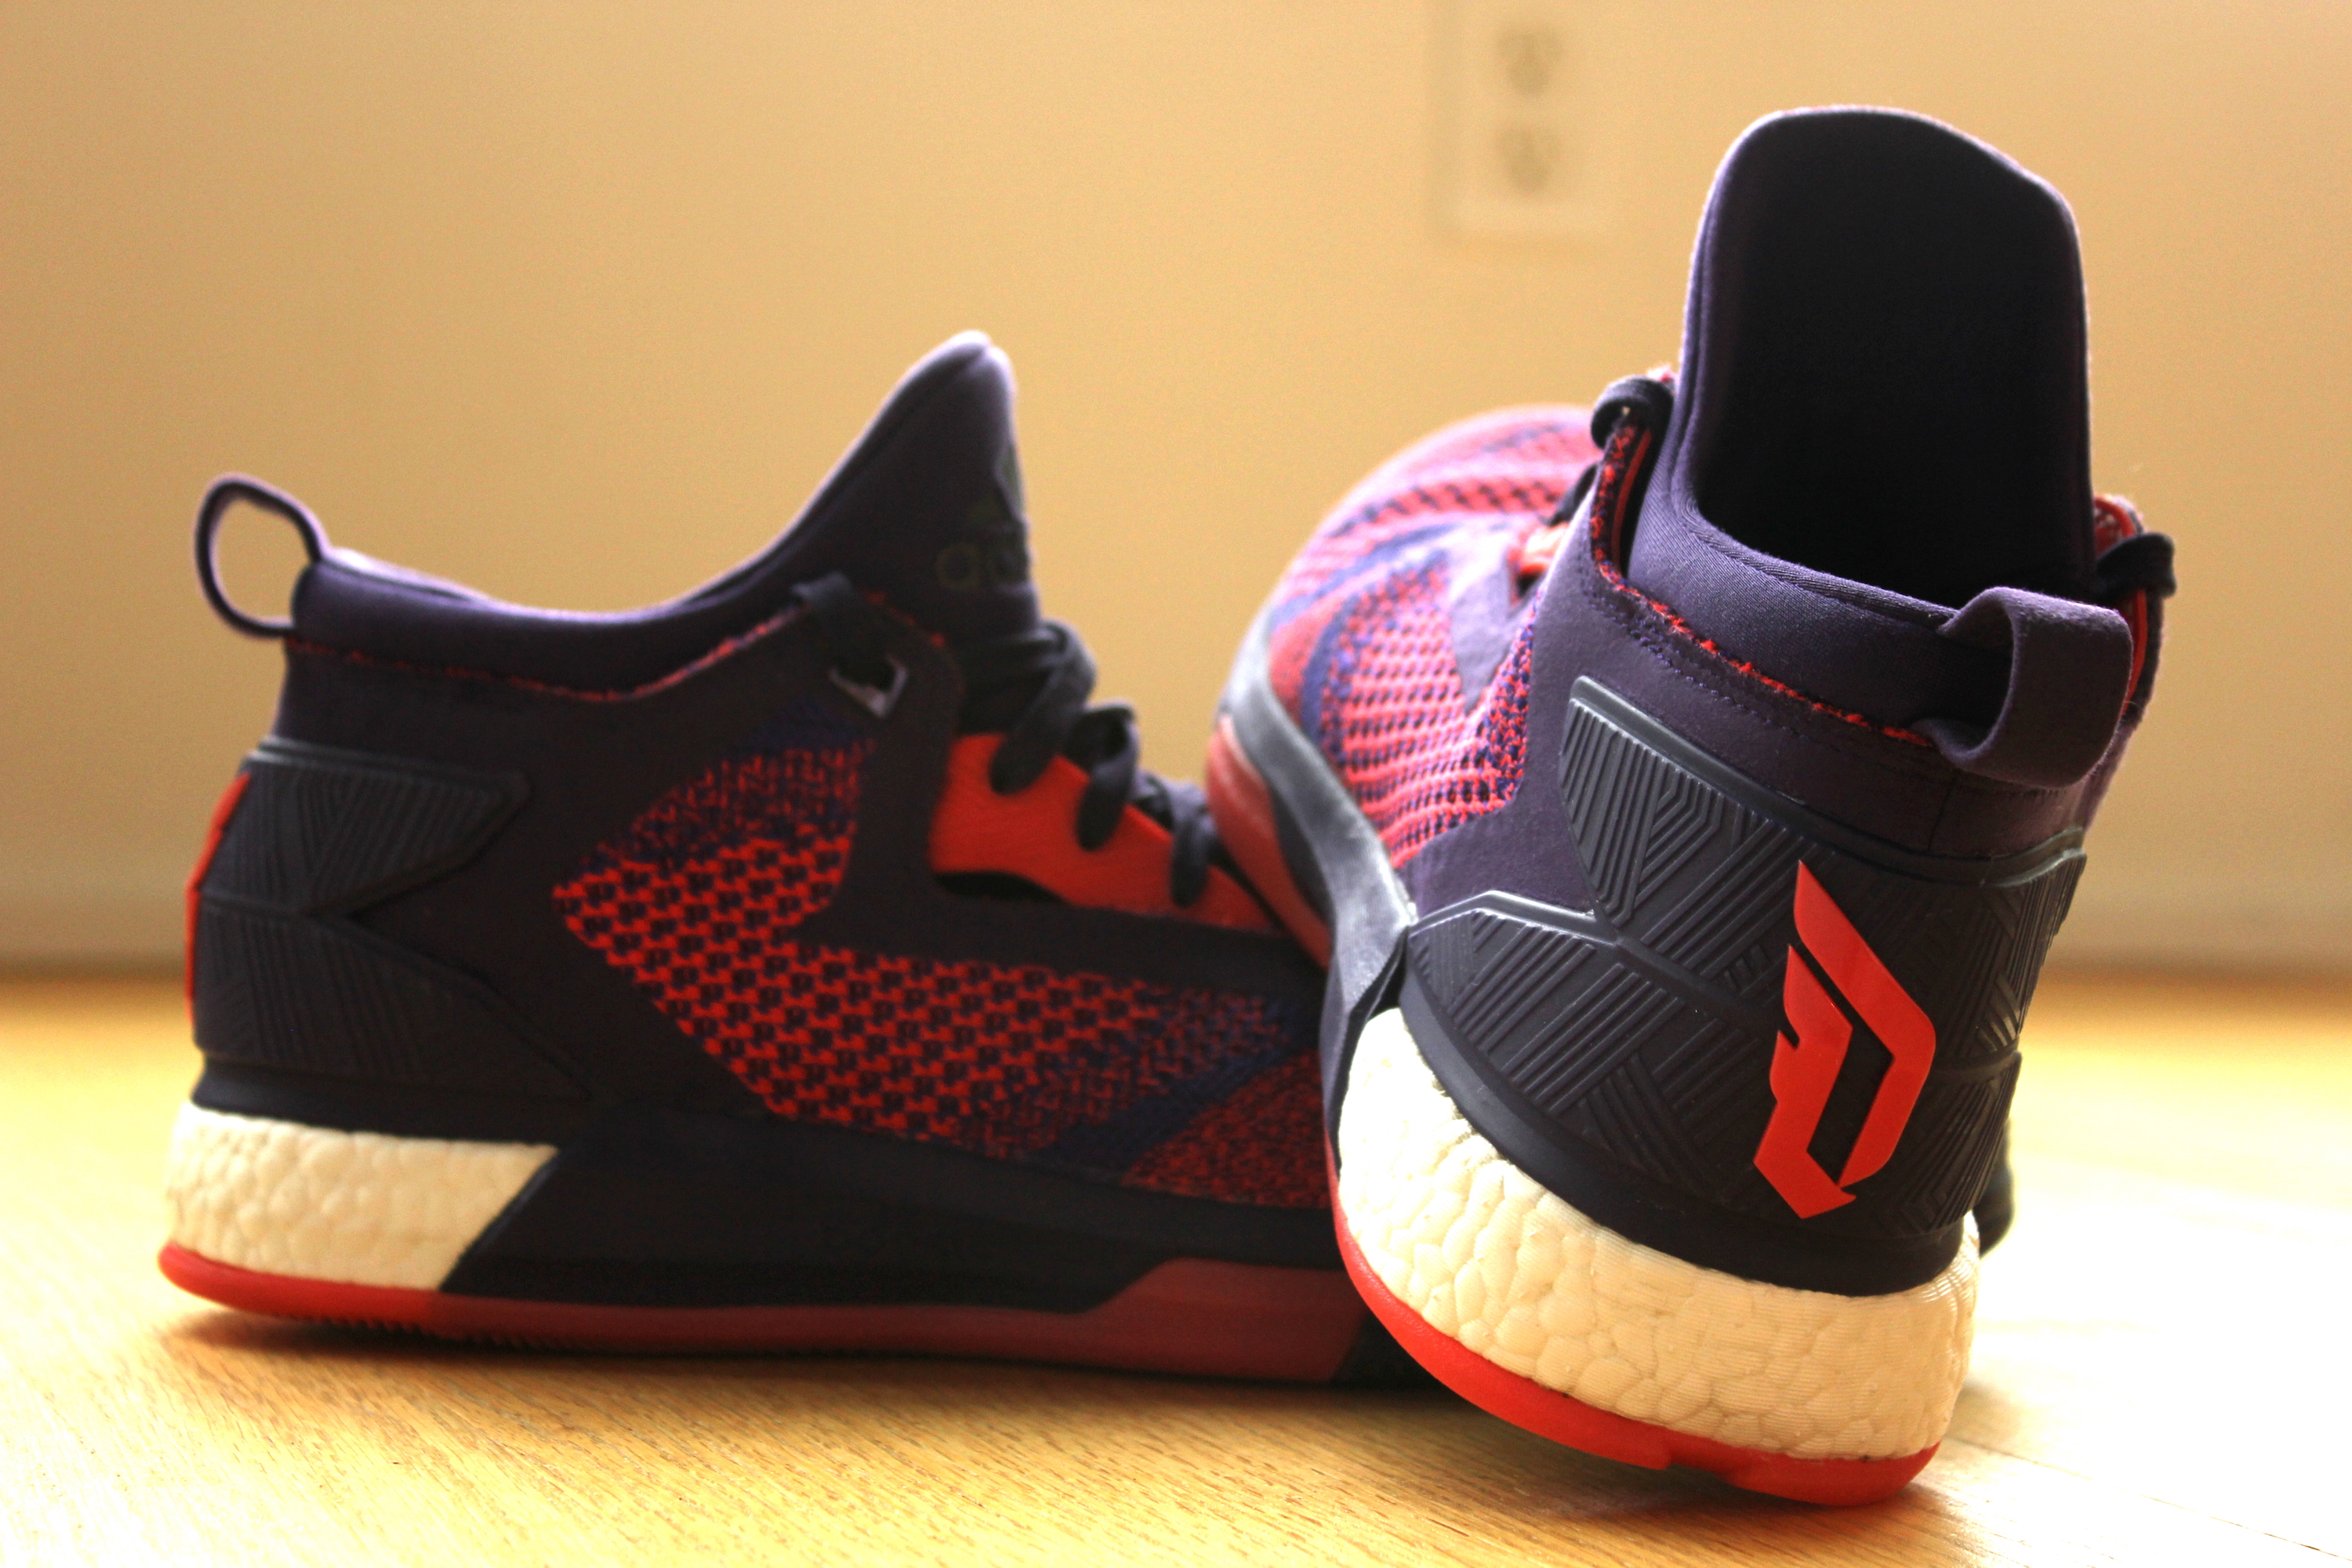 info for 299ec 3ae71 The D Lillard 2 Adidas signature shoe comes in Boost or Bounce. The better  fit depends on whether you value cushioning or stability.